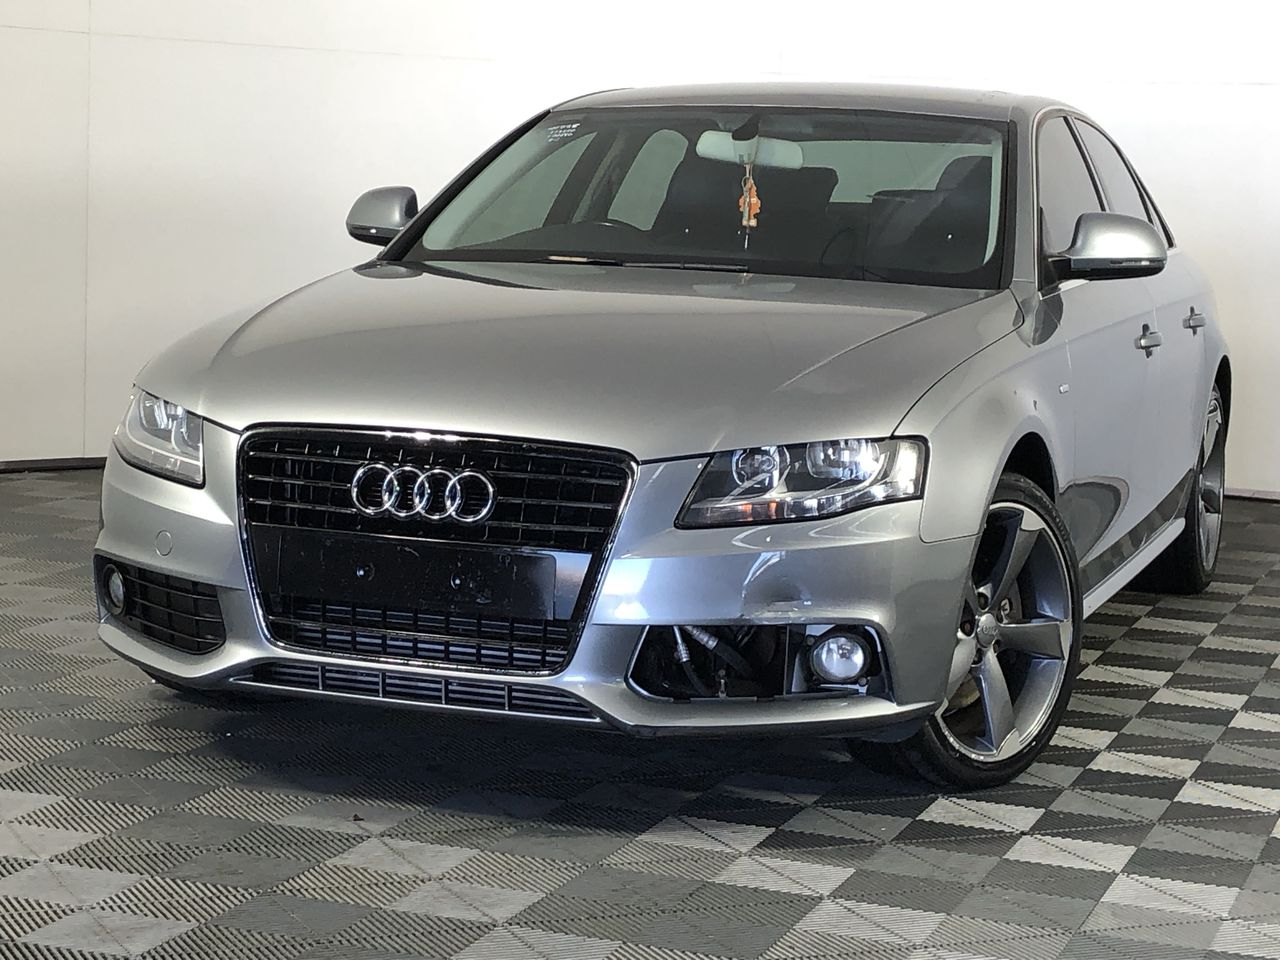 2009 Audi A4 2.7 TDI B8 Turbo Diesel CVT Sedan